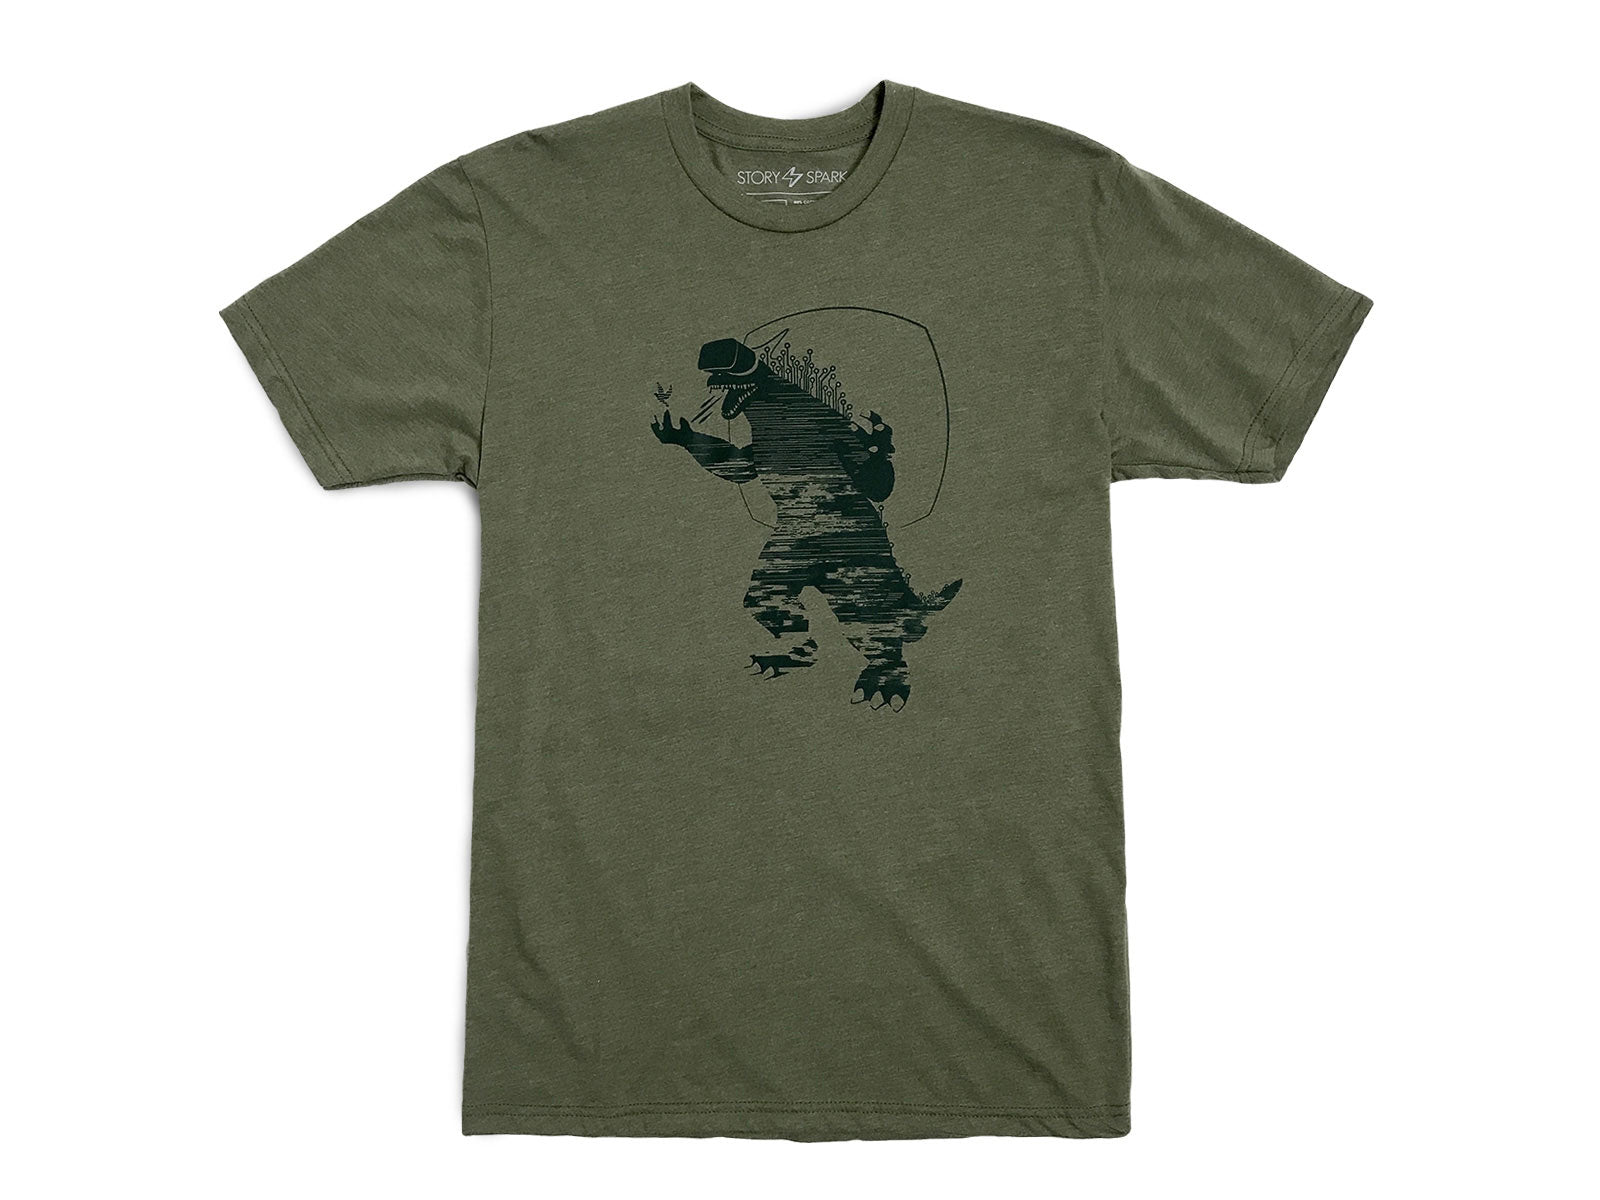 Mixed Reality graphic tshirt - virtual reality godzilla